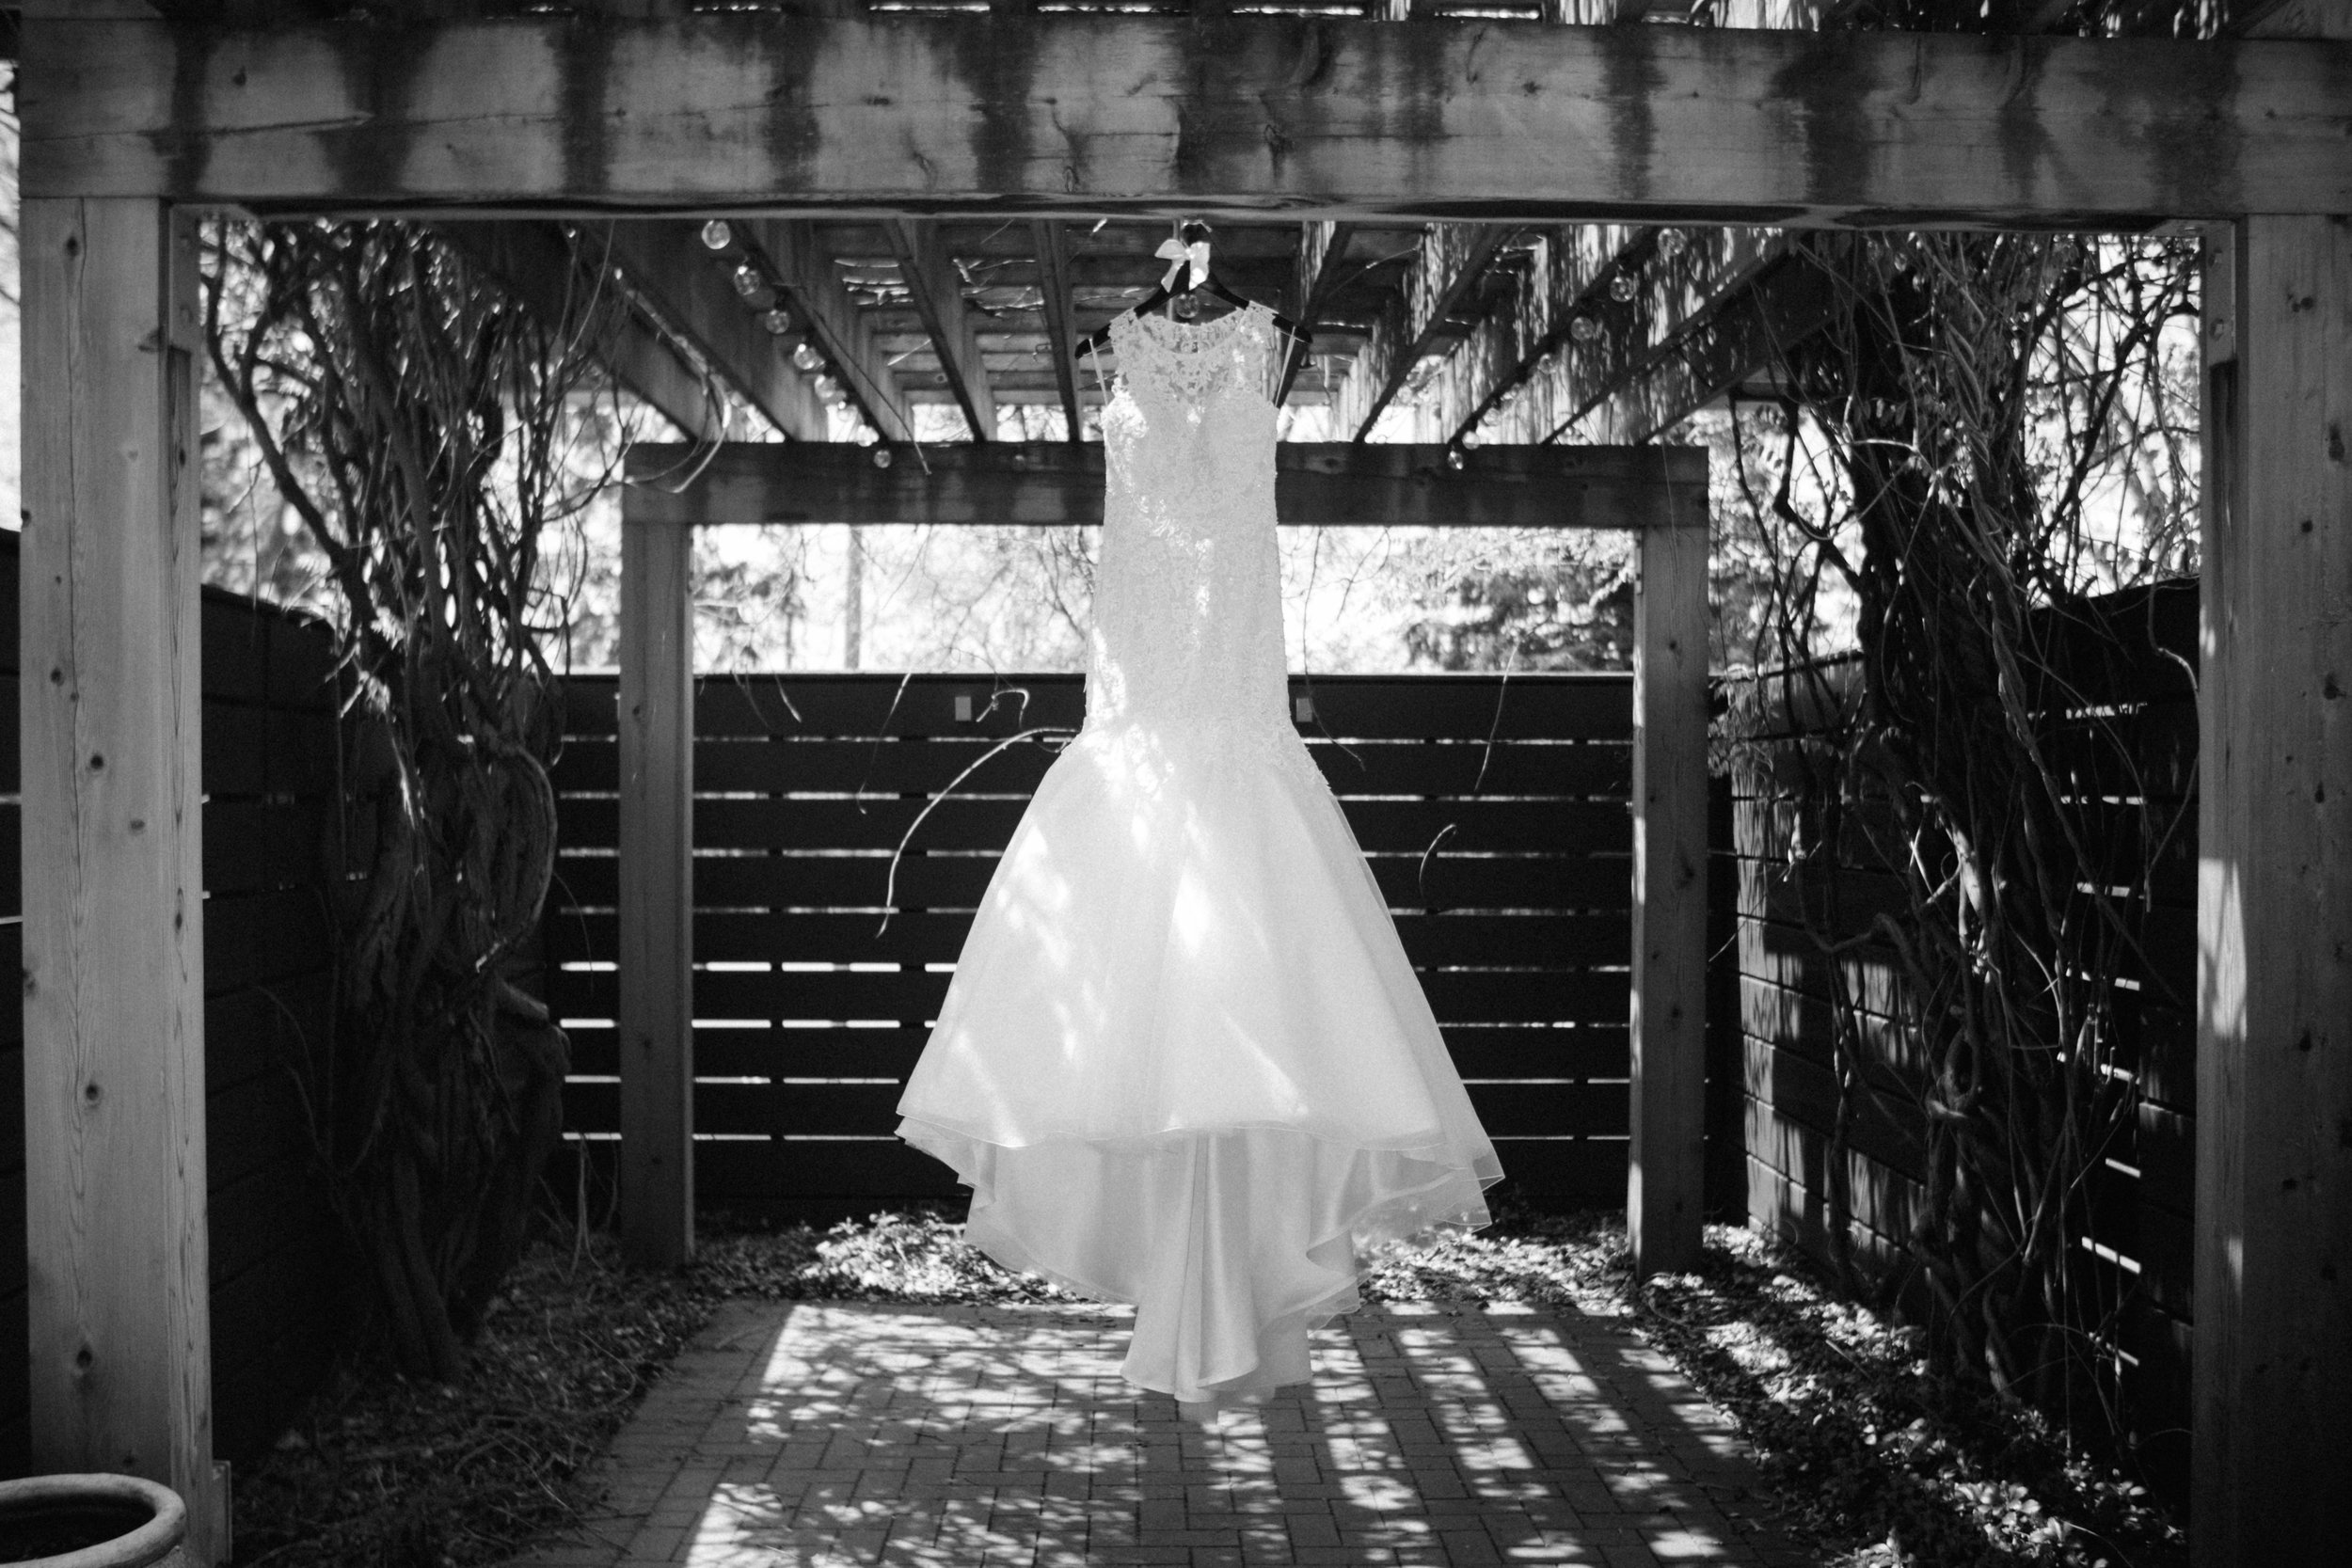 ShadowShinePictures-VeronicaToddKorthals-Ann-Arbor-Wedding-Photography-6.jpg